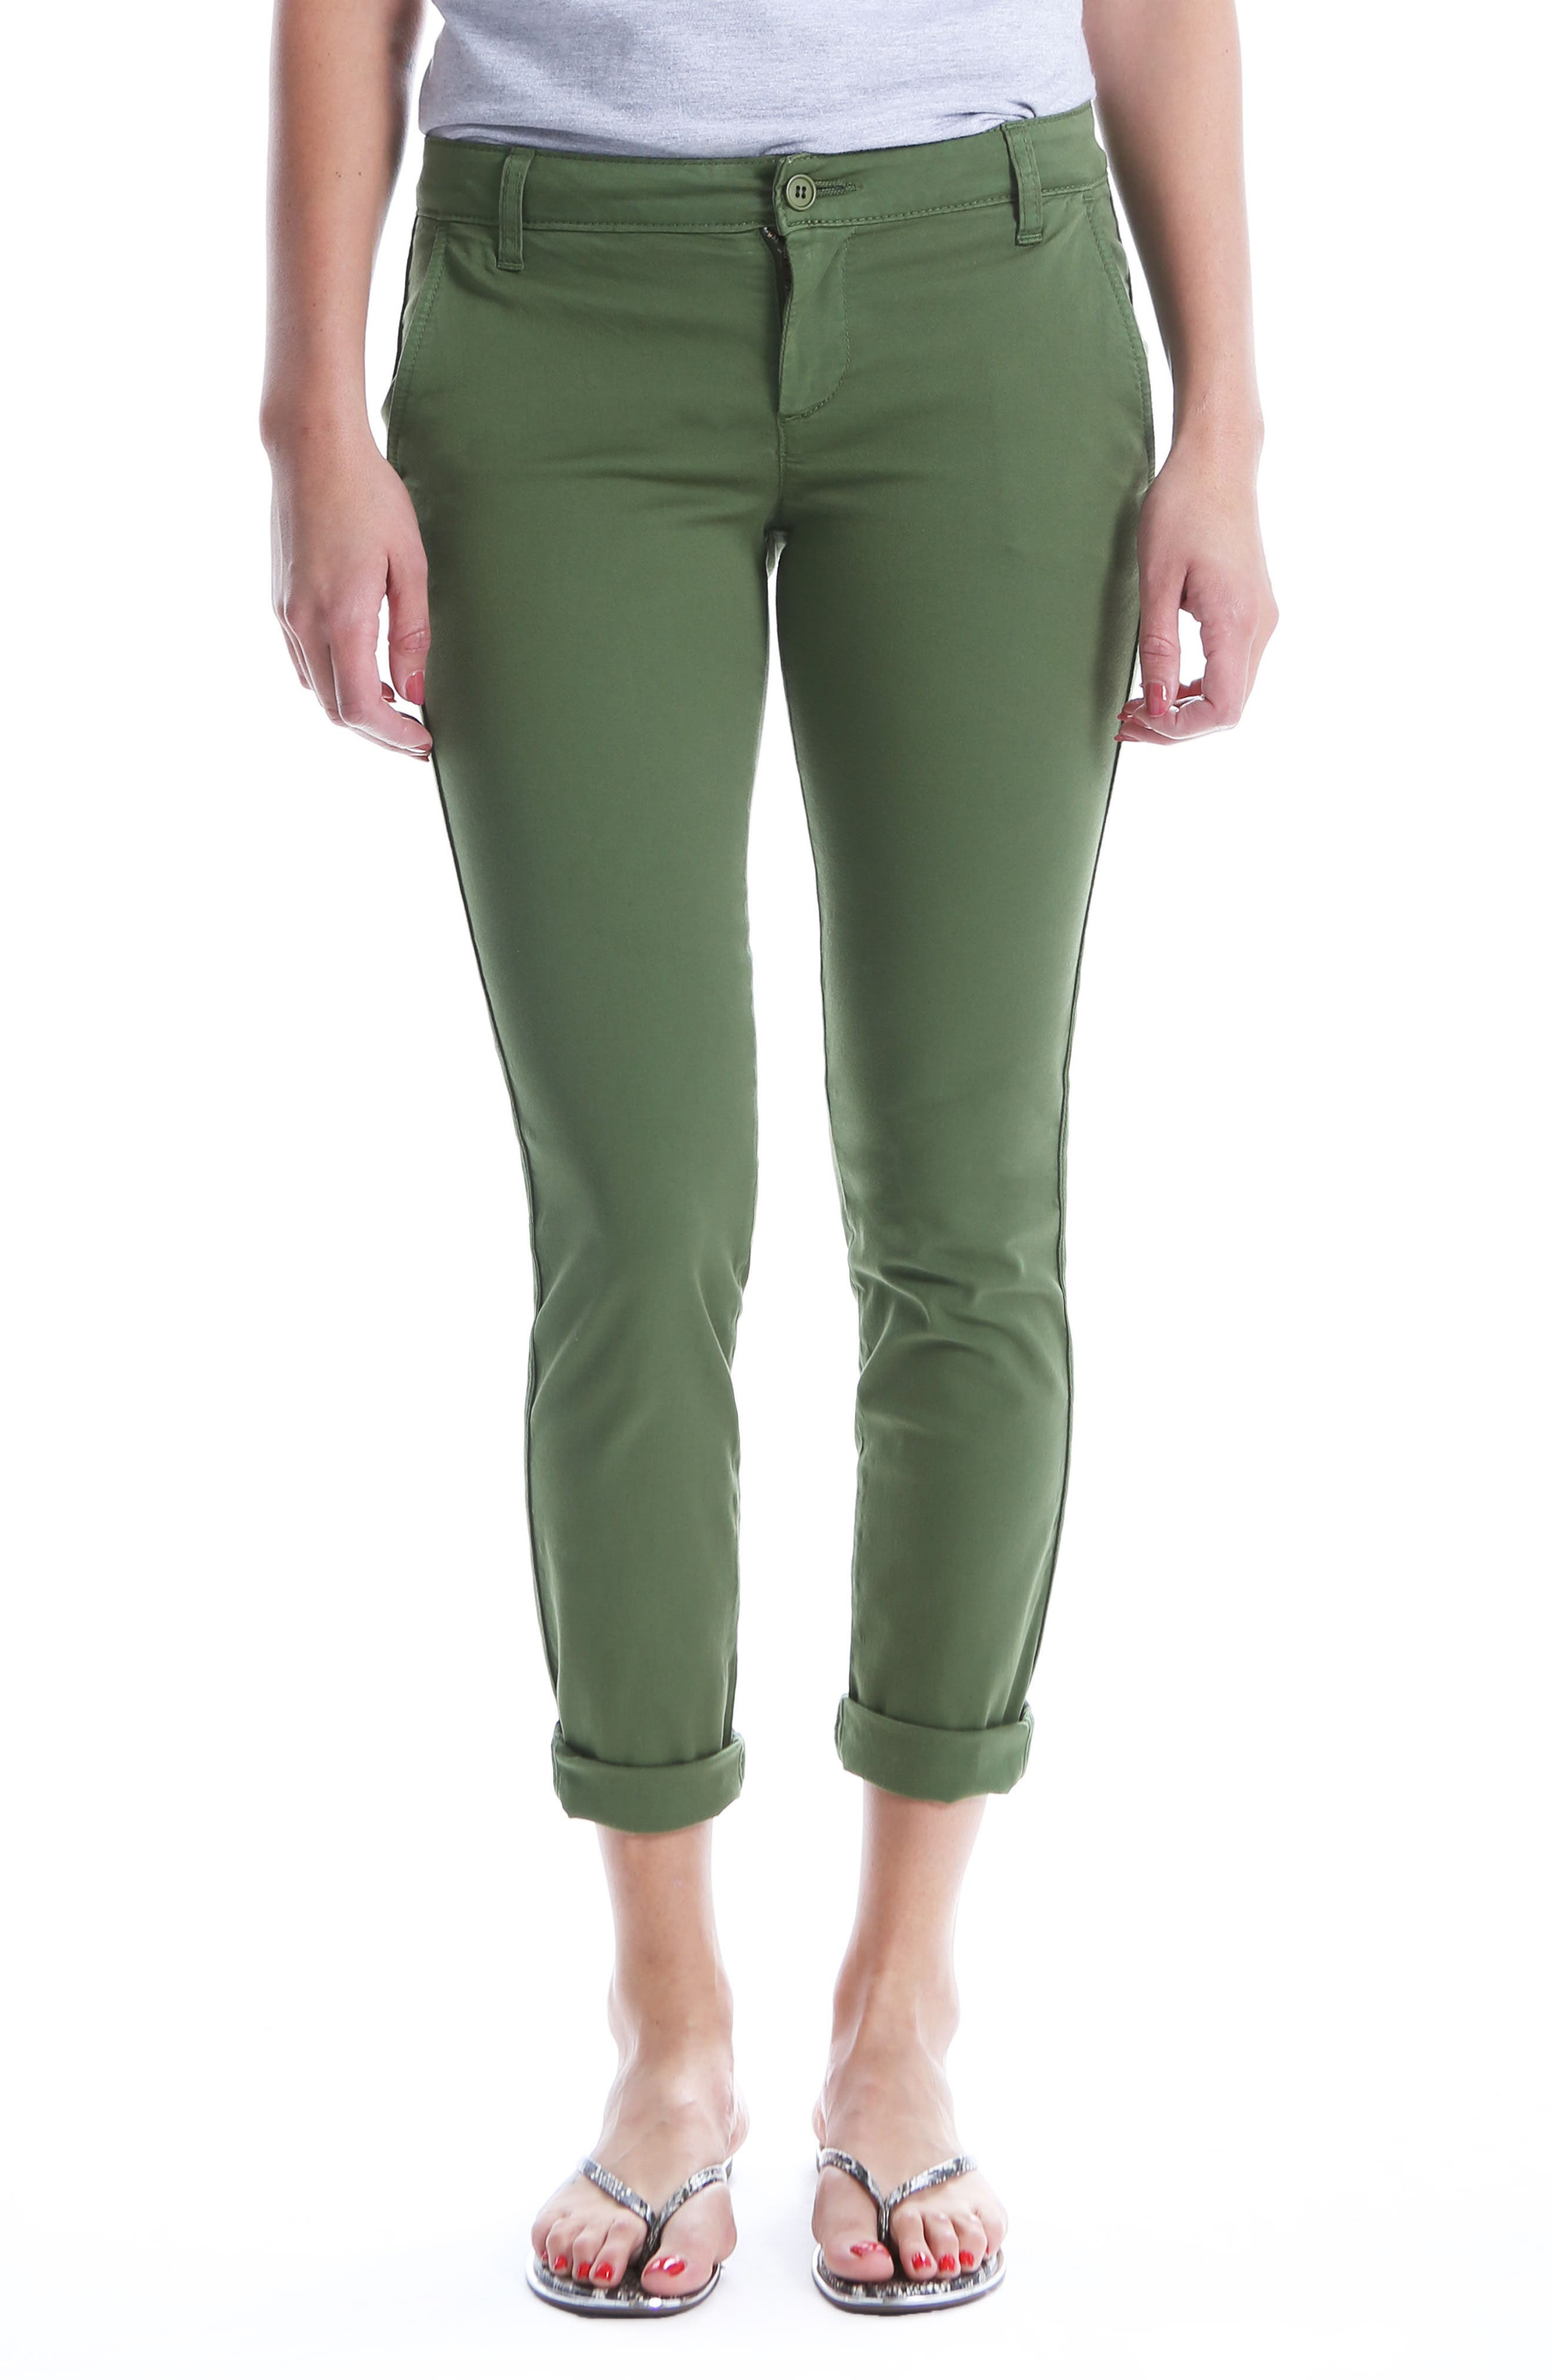 Alternate Image 1 Selected - KUT from the Kloth Stretch Cotton Pants